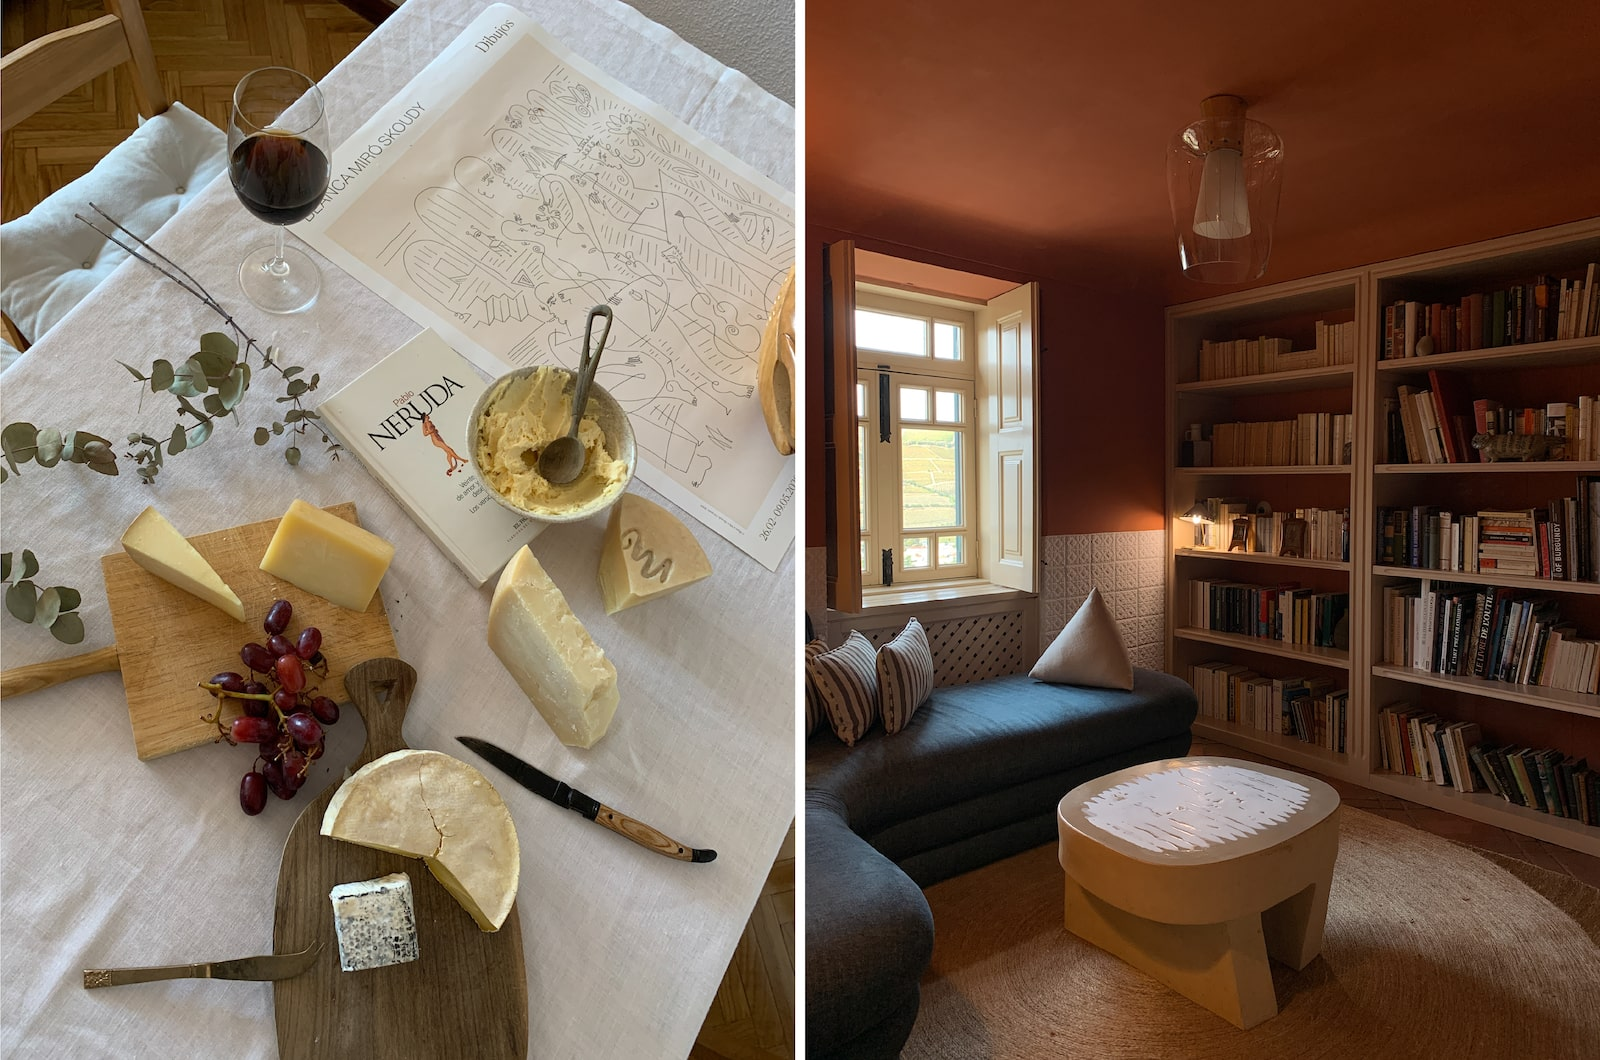 cheese and library